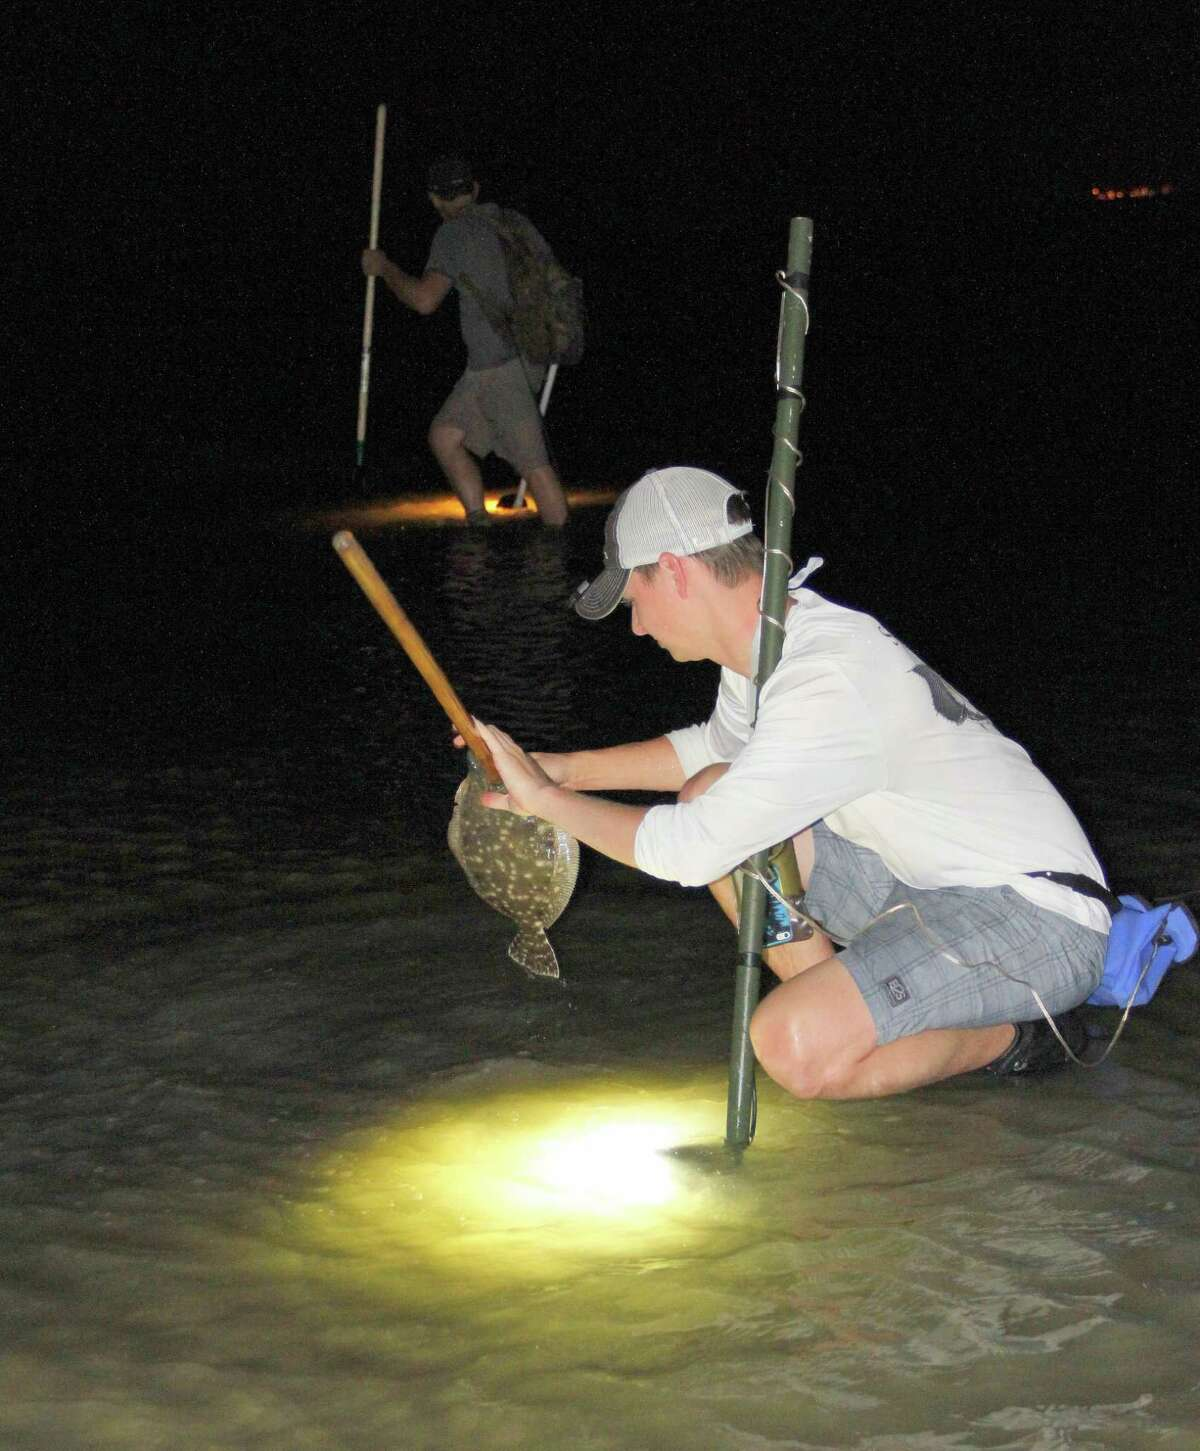 An evening spent gigging flounder in the shallows of a Texas bay is a traditional, and often very productive, way anglers avoid the miserable heat and blazing sunlight of summer days.